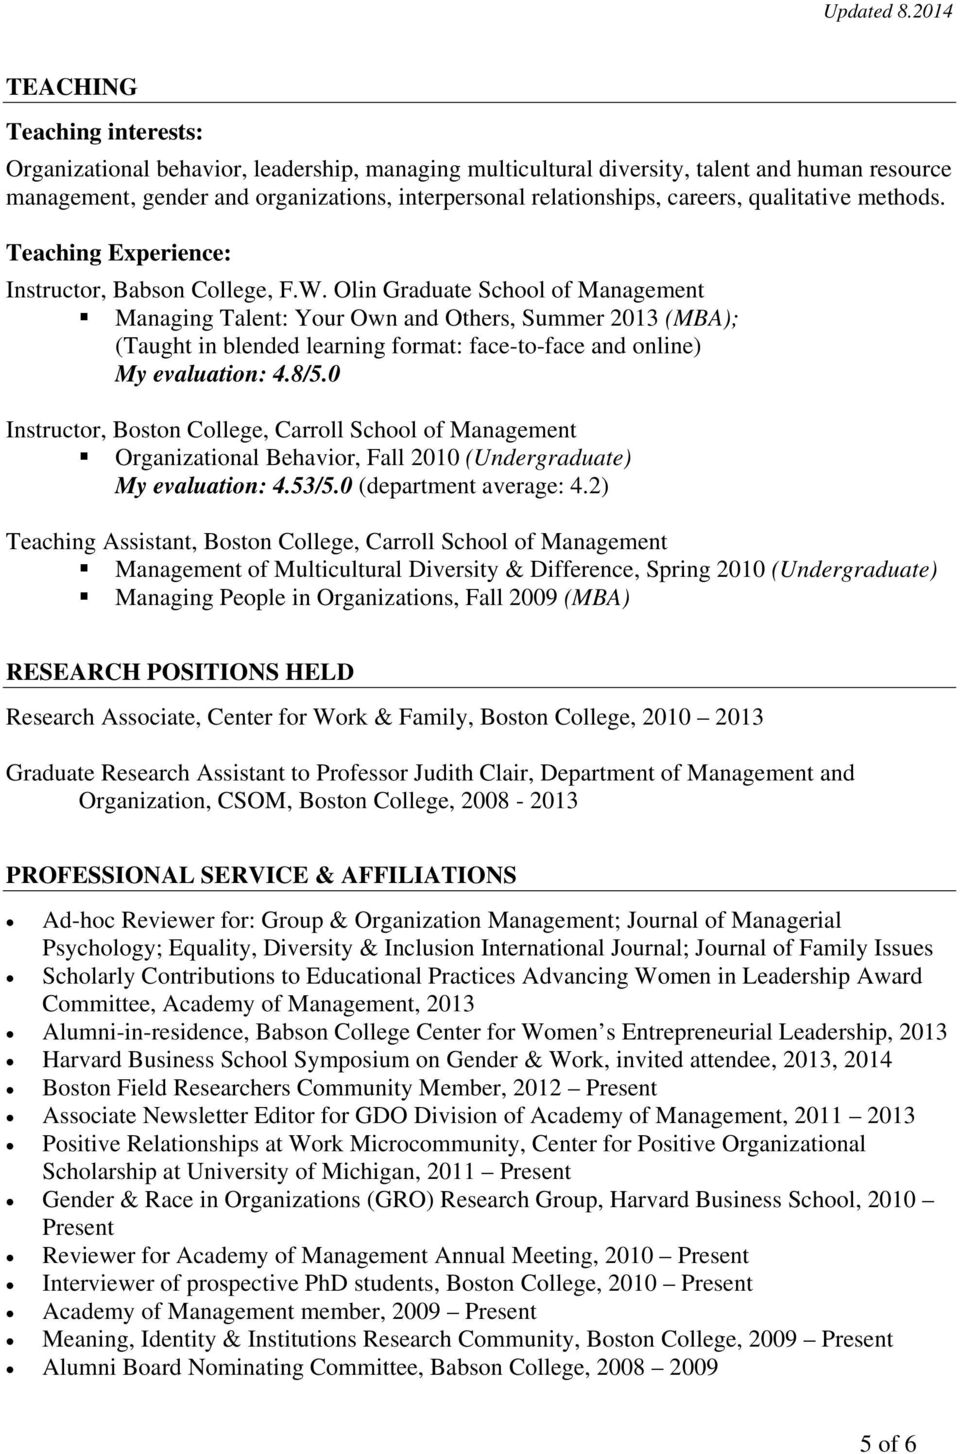 Olin Graduate School of Management Managing Talent: Your Own and Others, Summer 2013 (MBA); (Taught in blended learning format: face-to-face and online) My evaluation: 4.8/5.